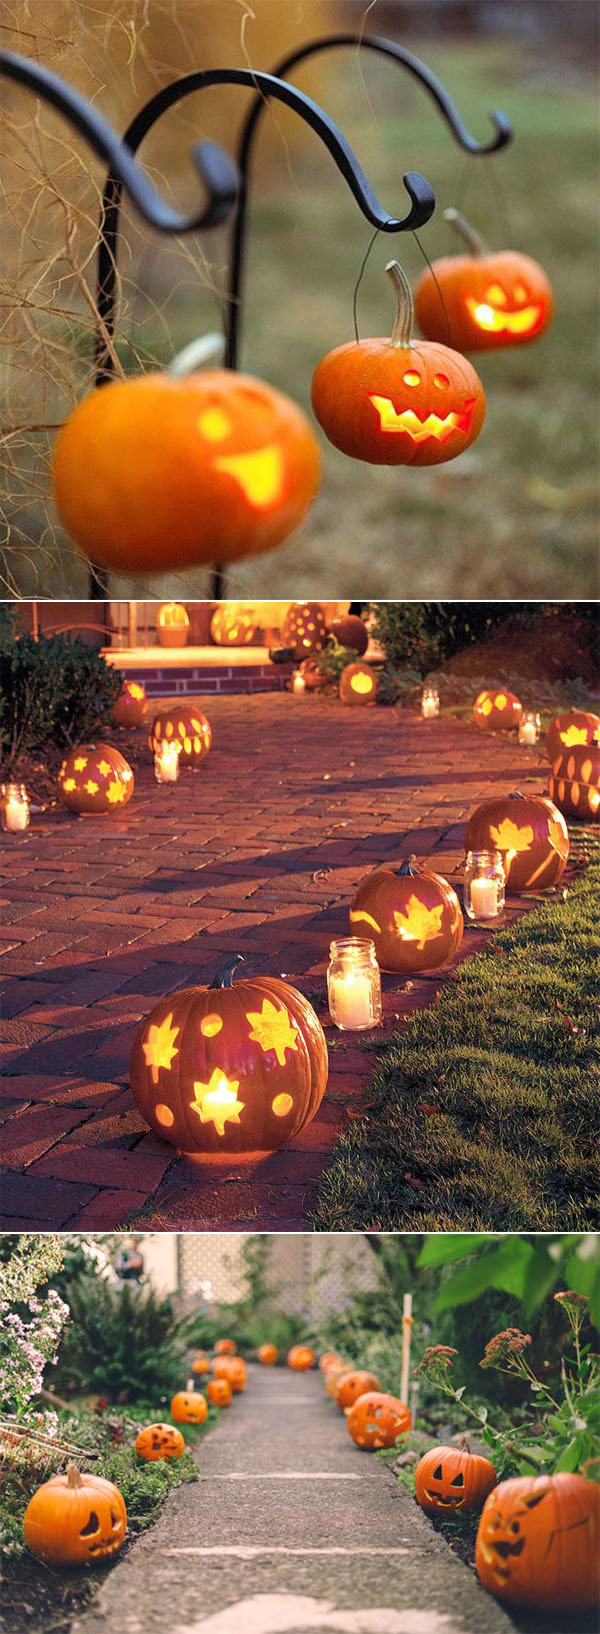 Pumpkin Paved Aisle Decoration for Halloween Wedding